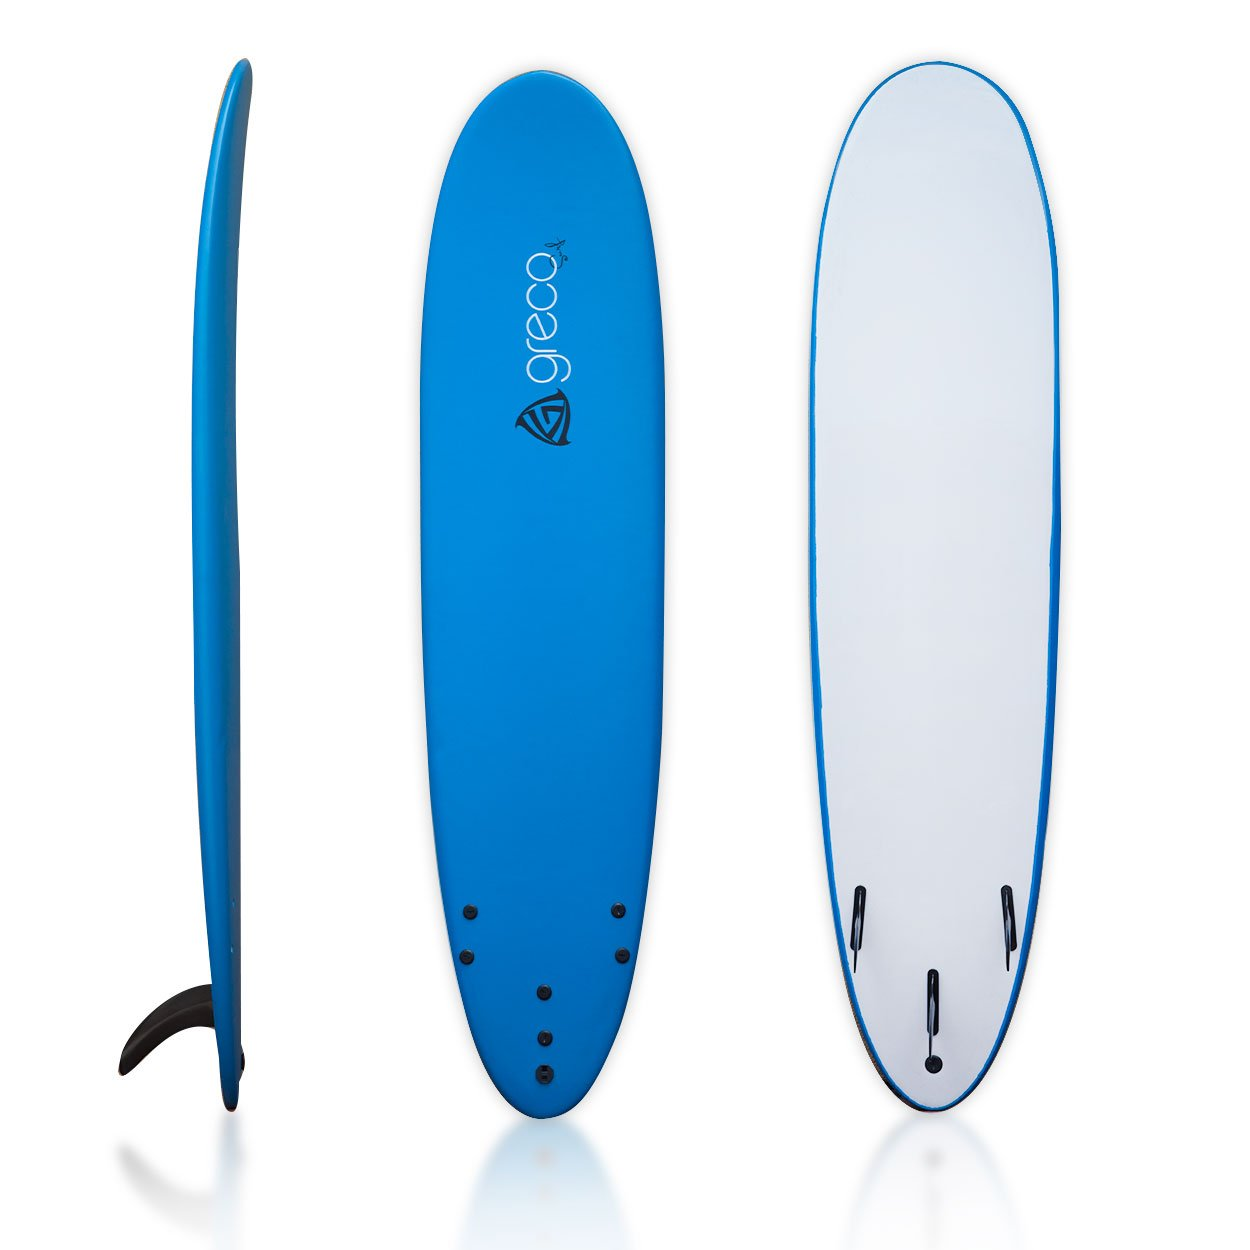 Top 10 Best Surfboards (2020 Reviews & Buying Guide) 2